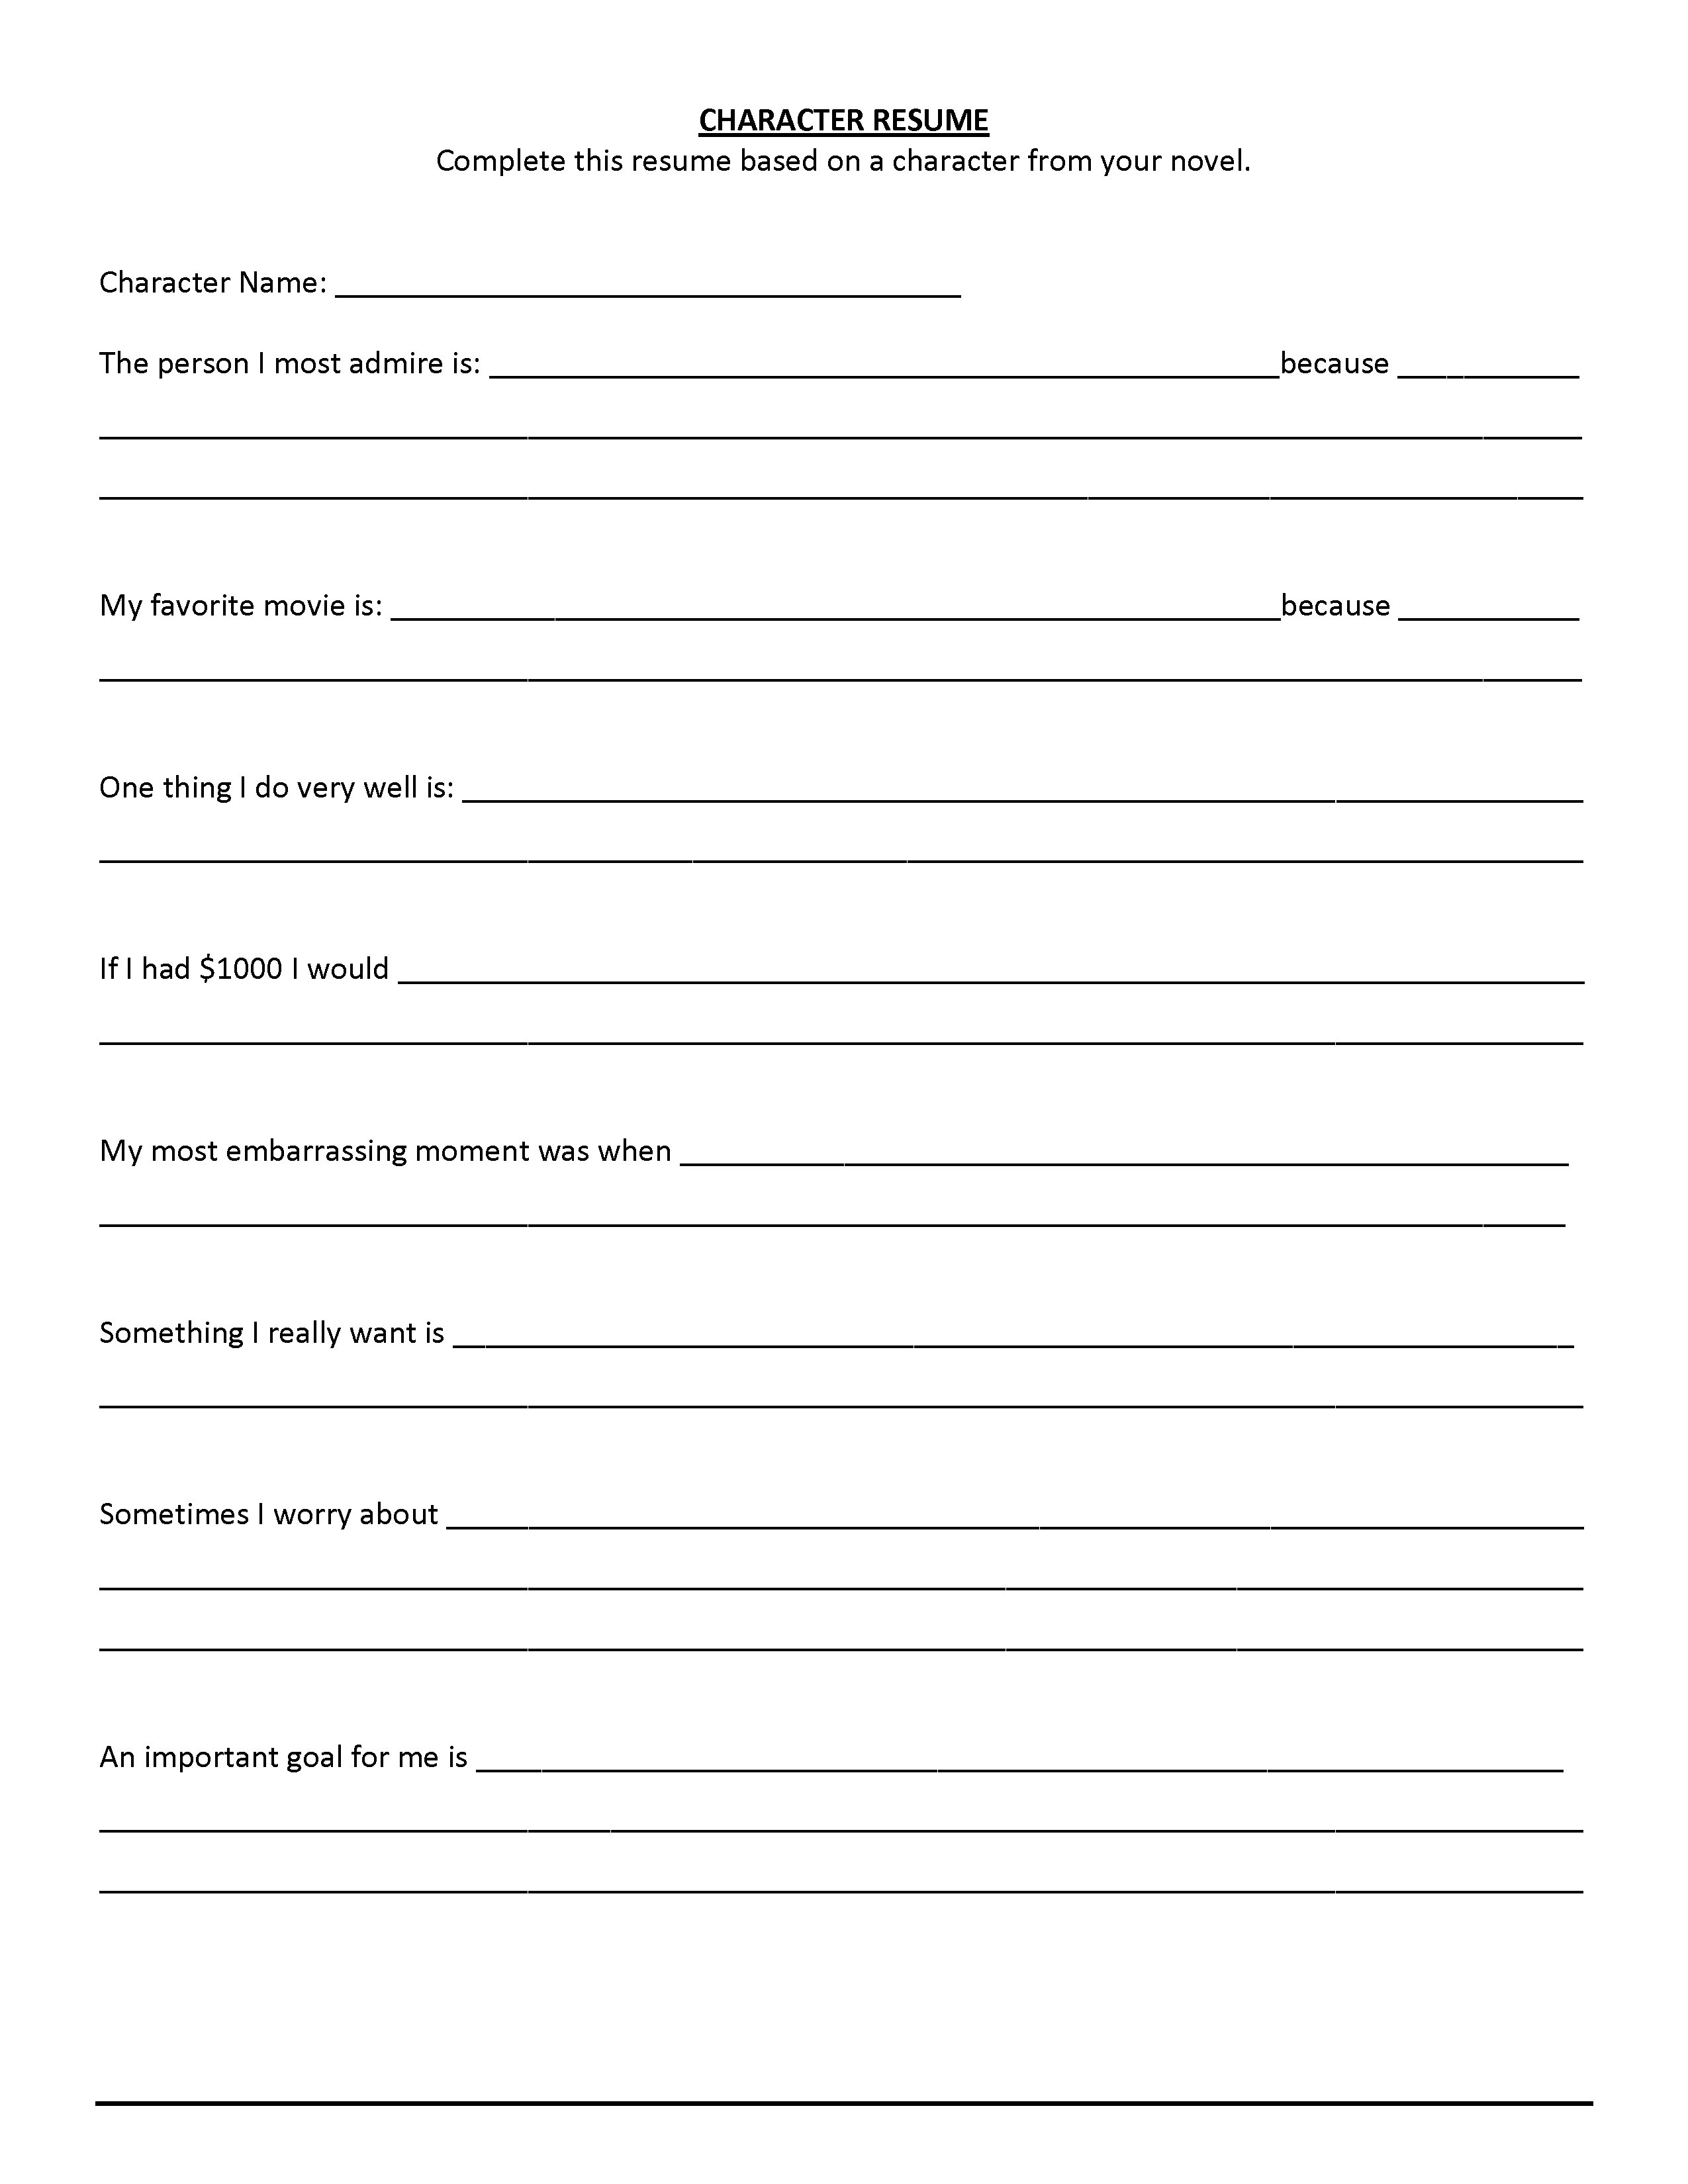 Free Printable Fill In The Blank Resume Templates     Business - Free Printable Fill In The Blank Resume Templates